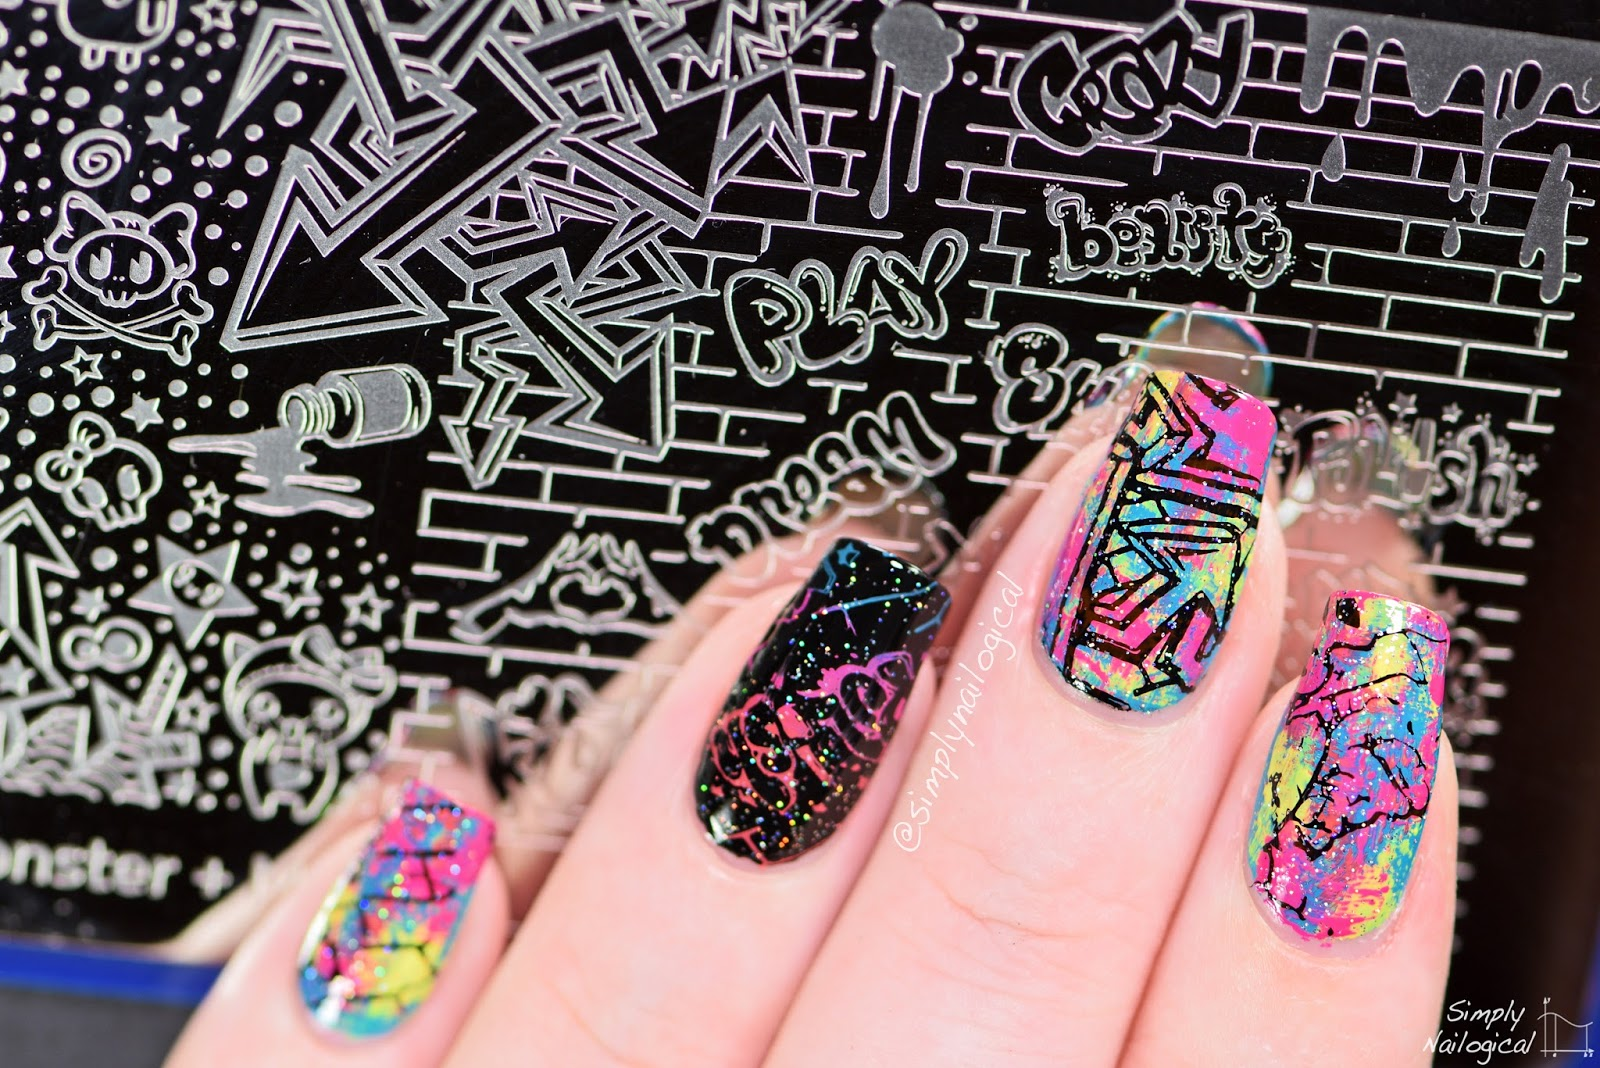 Simply Nailogical: Giant Mochi stamper nails!